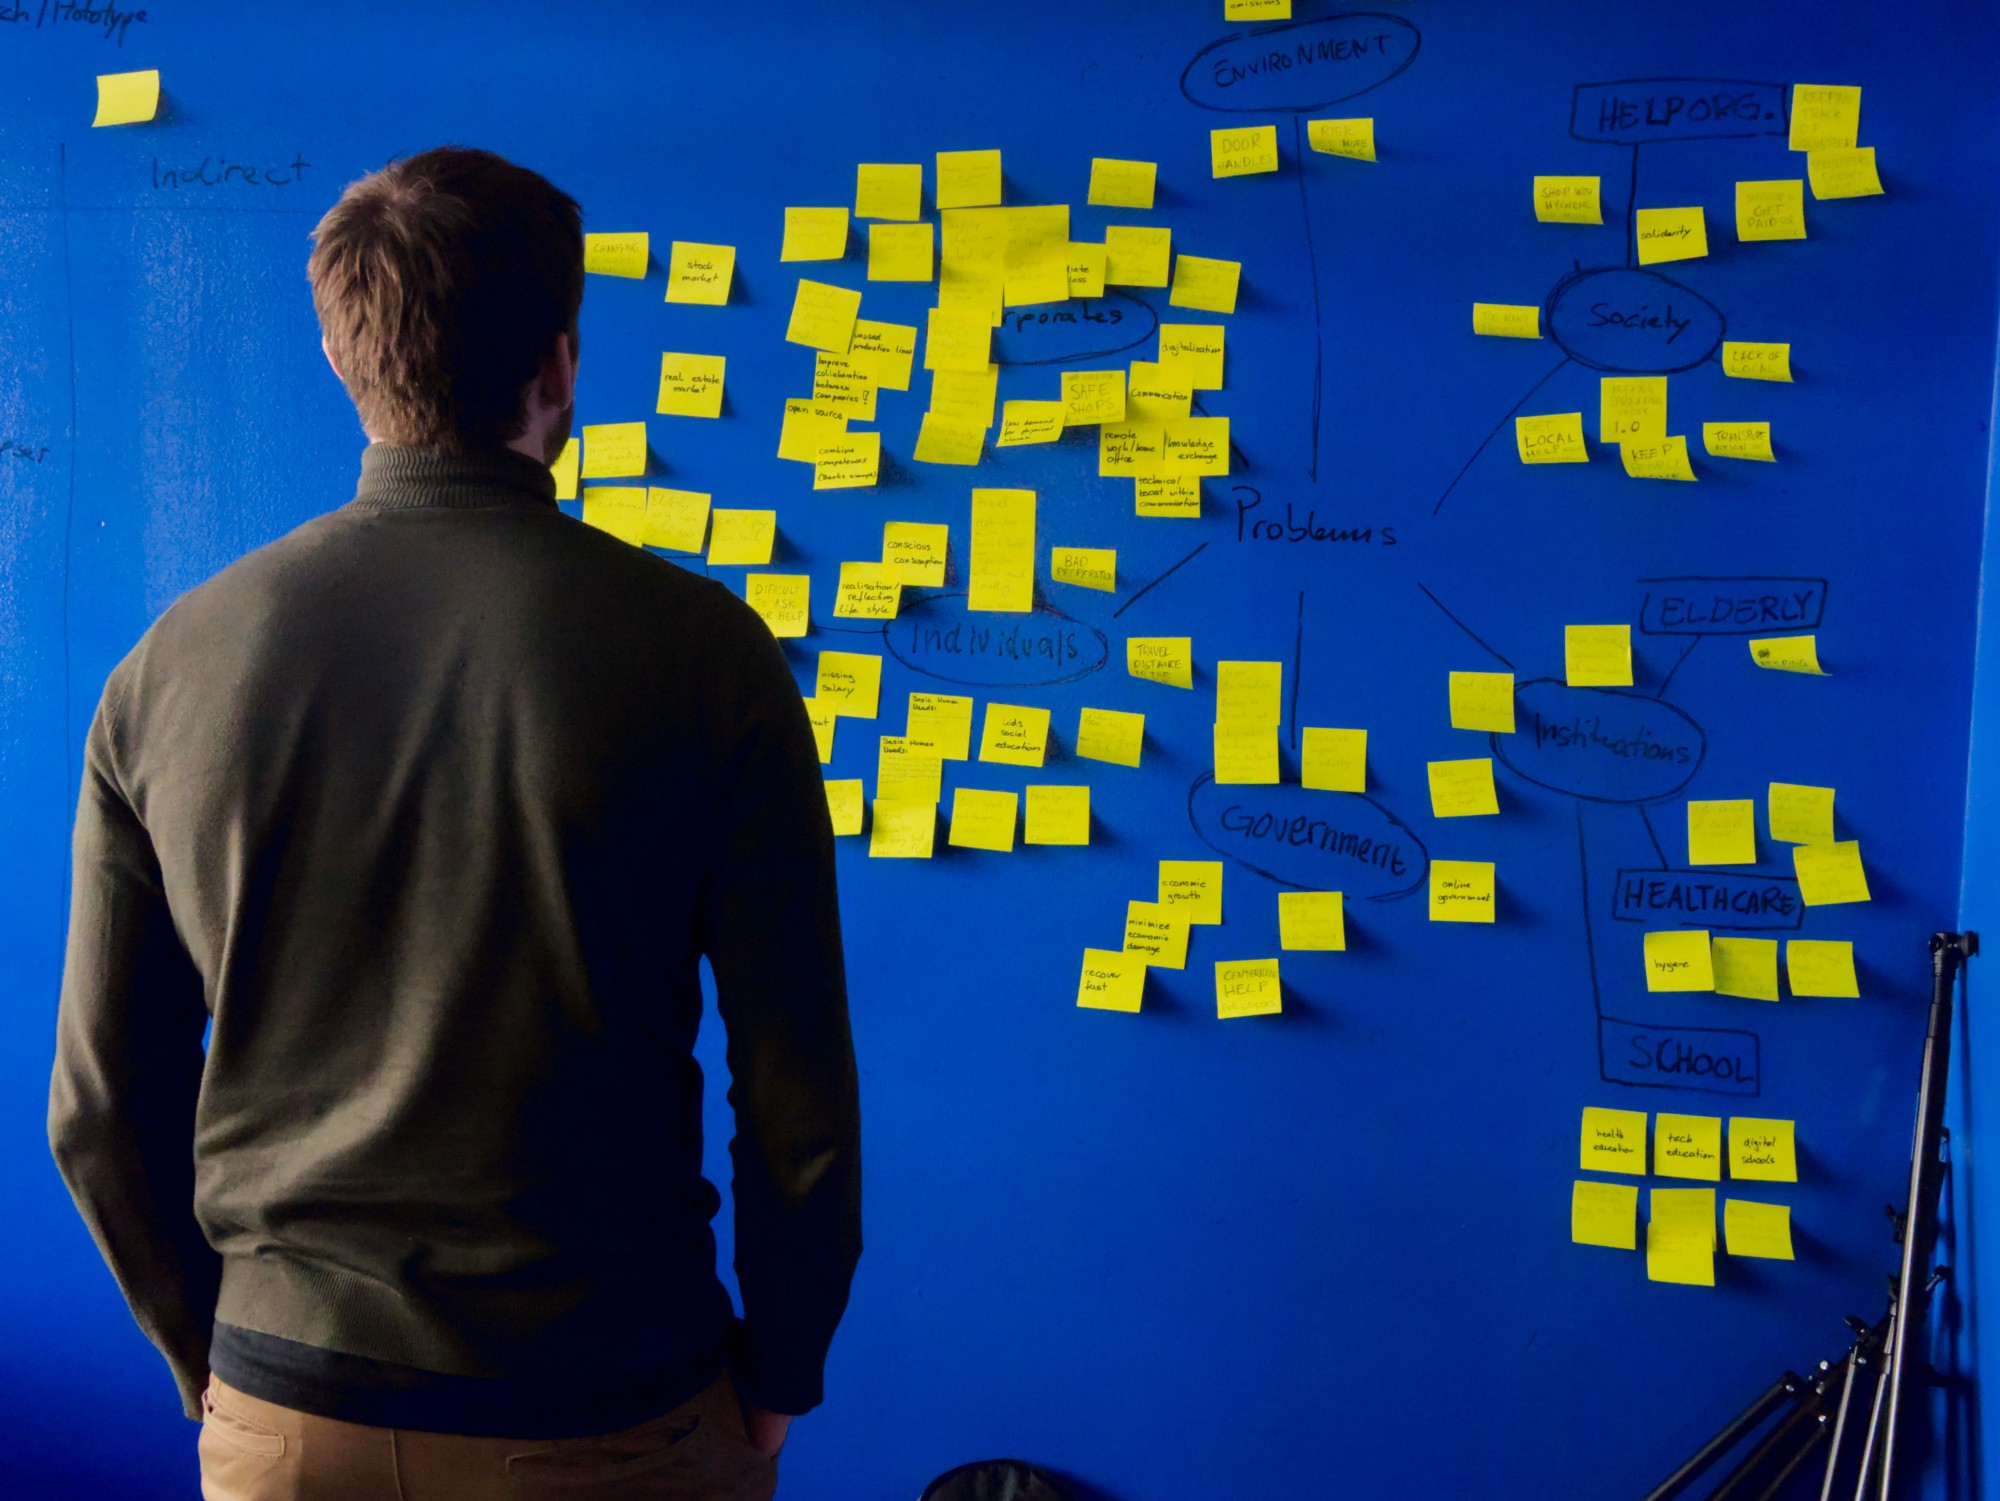 A man that is standing in front of a blue board filled with yellow post-it notes.